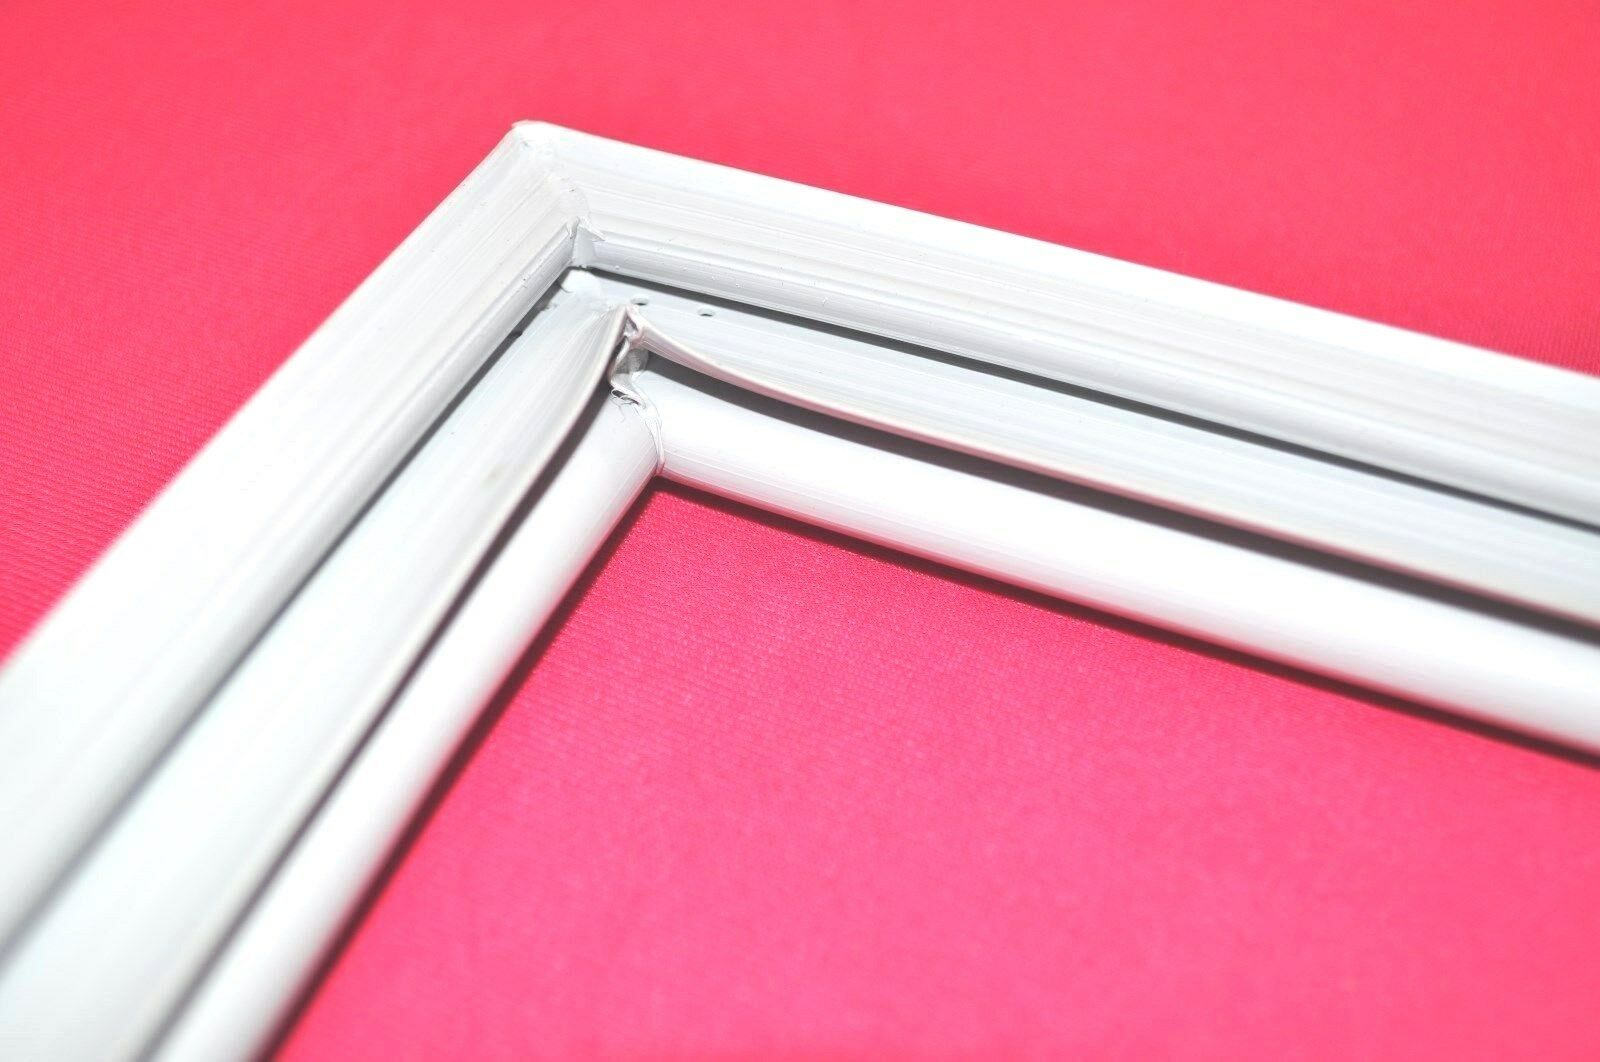 Replace refrigerator door seal - How To Replace A Refrigerator Door Seal 15 Steps With Pictures